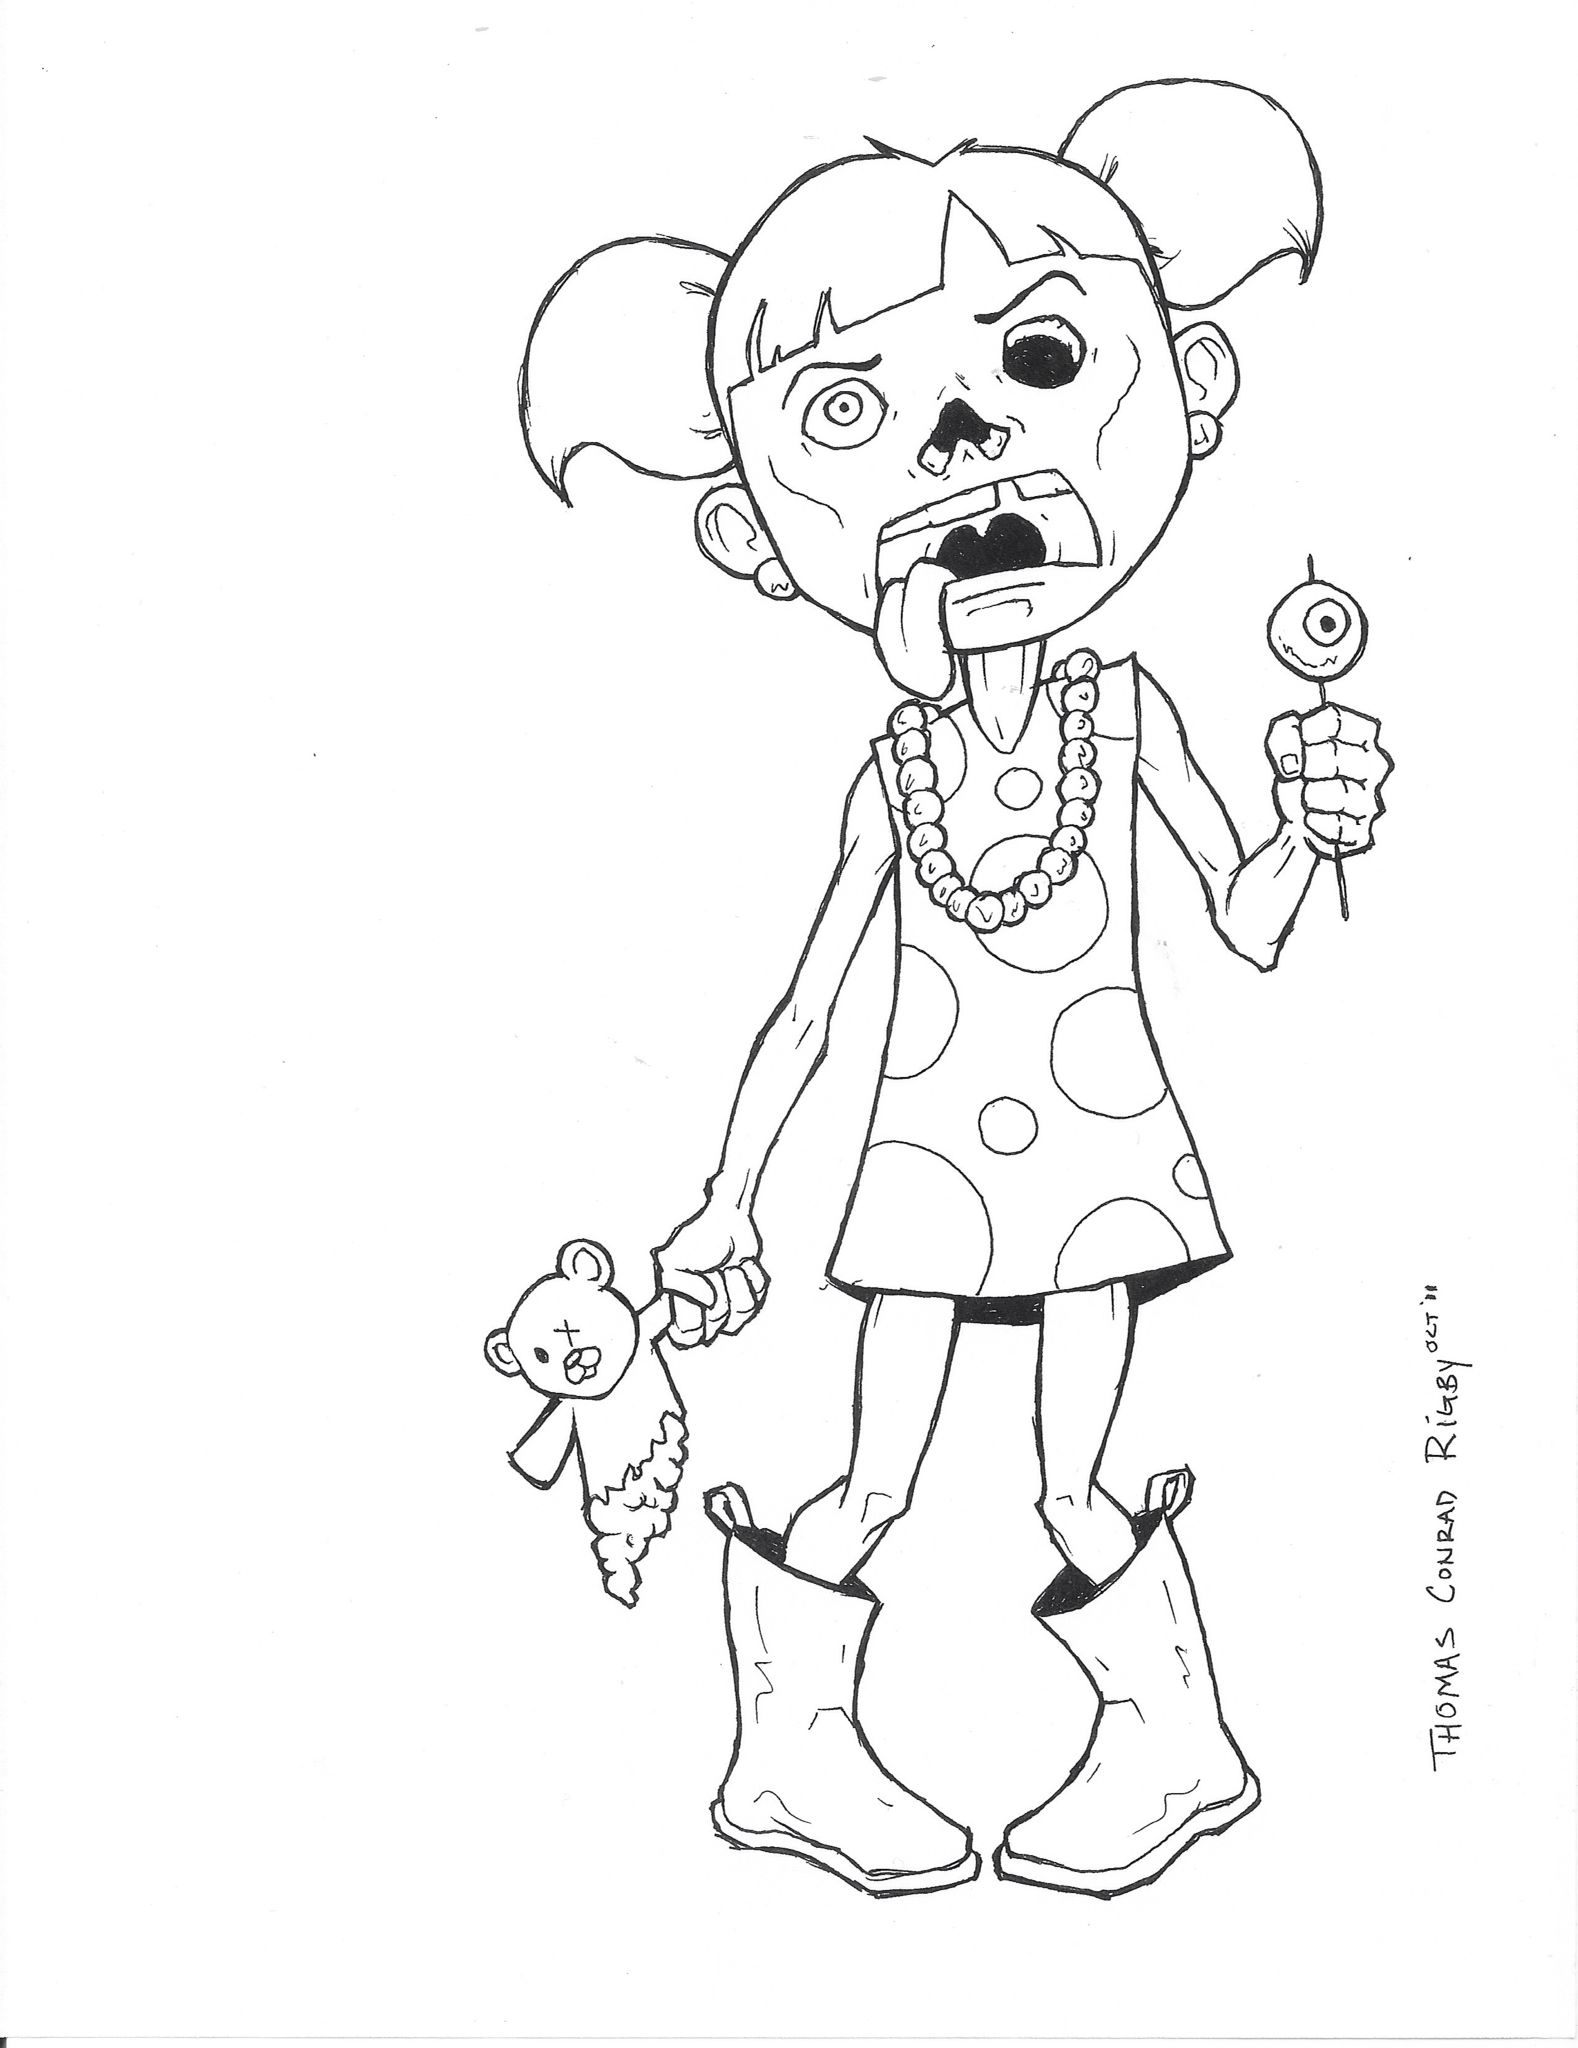 Zombie Santa Coloring Page With My Designs Pinterest Pages